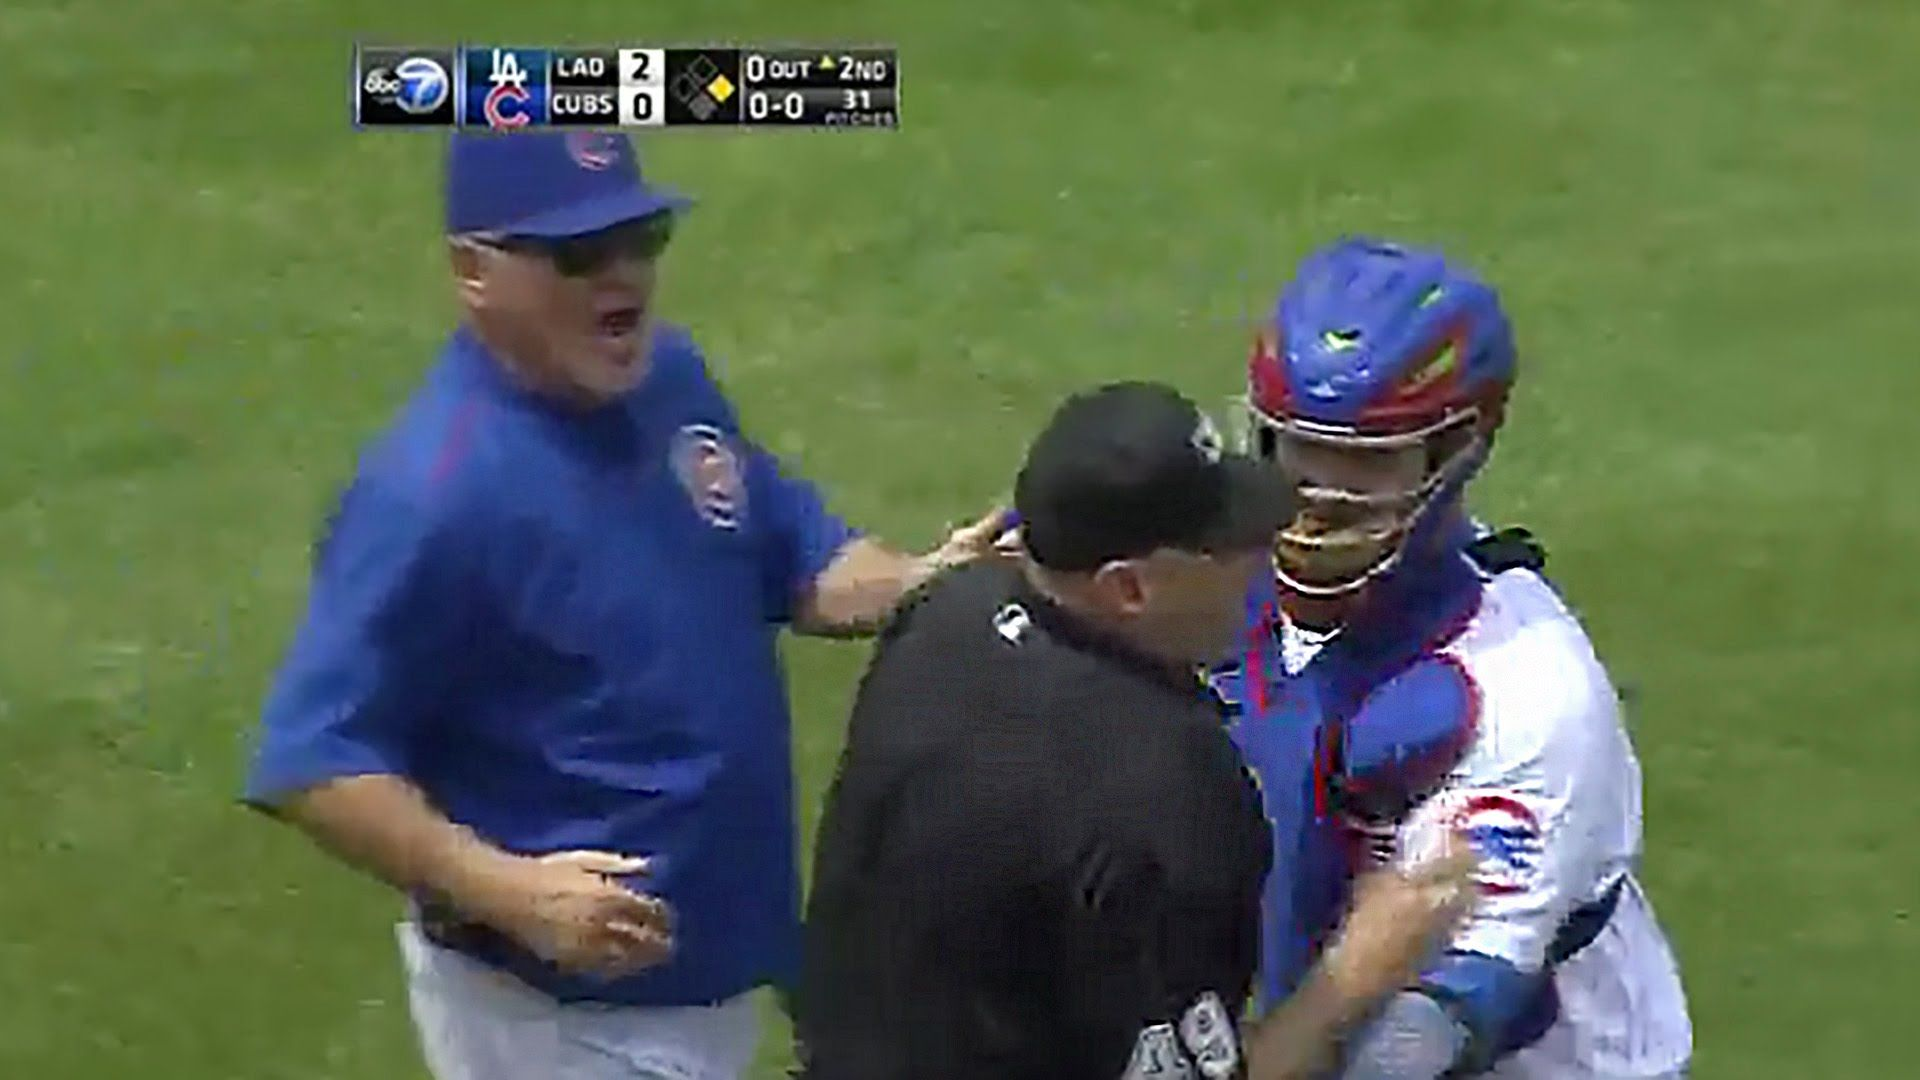 Mlb Umpire Charges Mound To Confront Jon Lester Video Mlb Confront Lesters